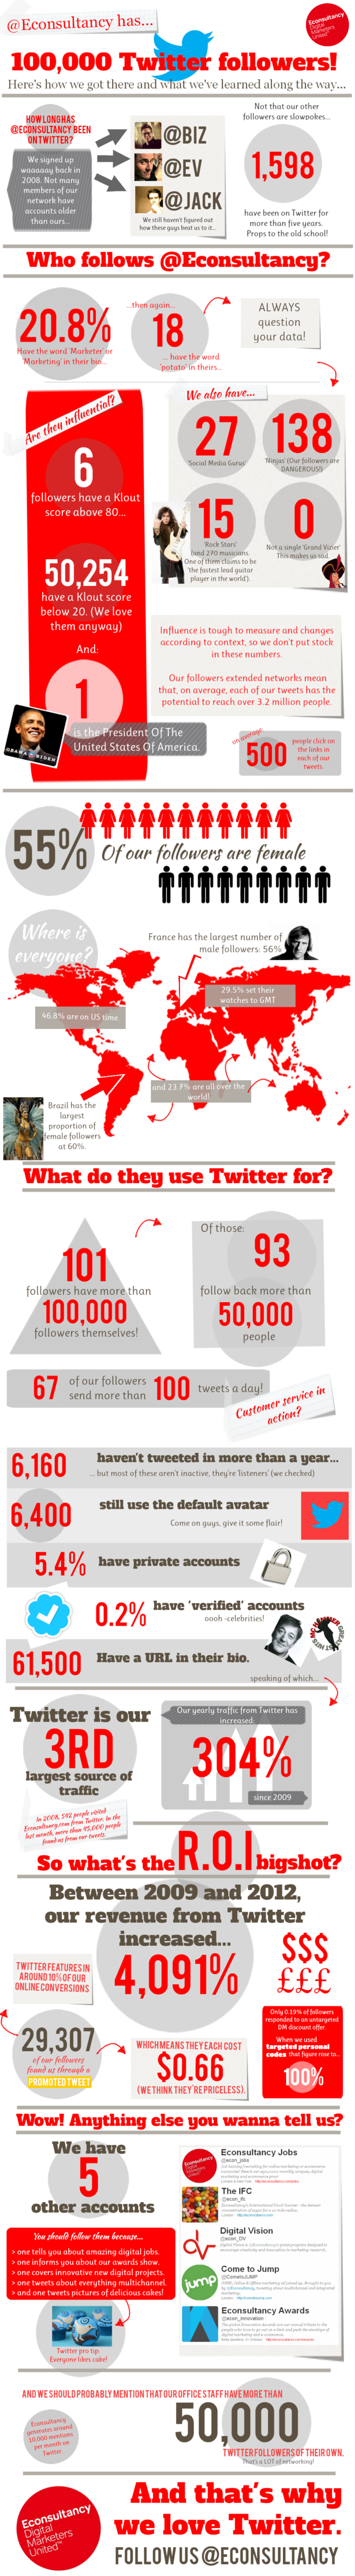 How Econsultancy Got 100000 Twitter Followers - Infographic